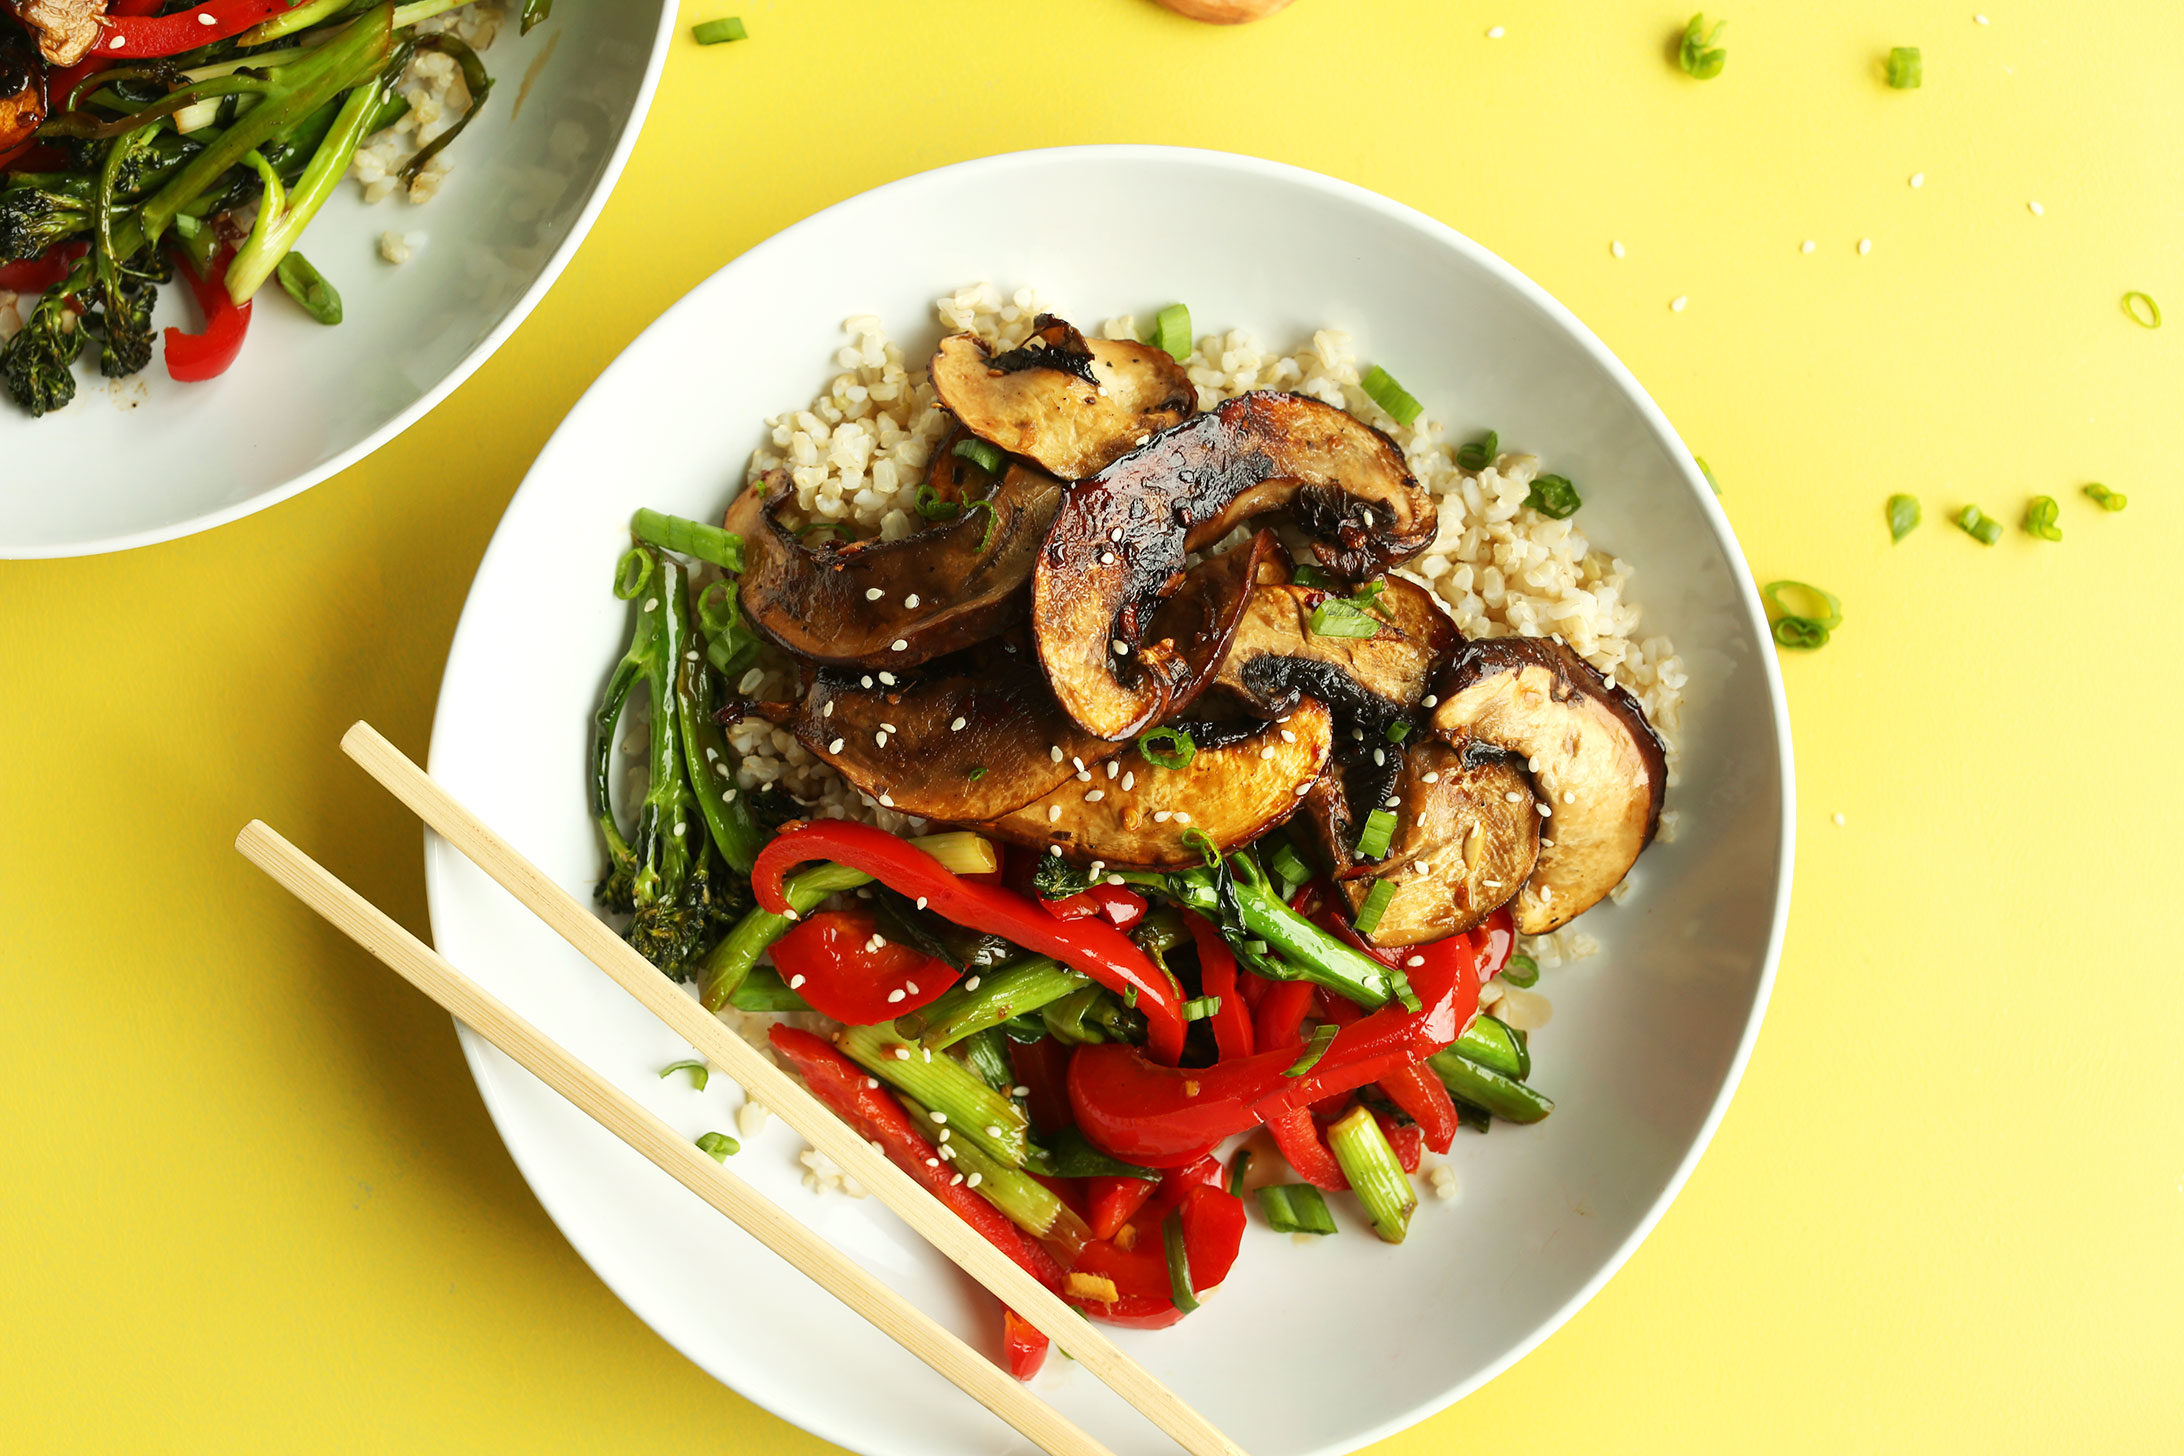 5 Healthy and Hearty Mushroom Recipes to Make for Dinner